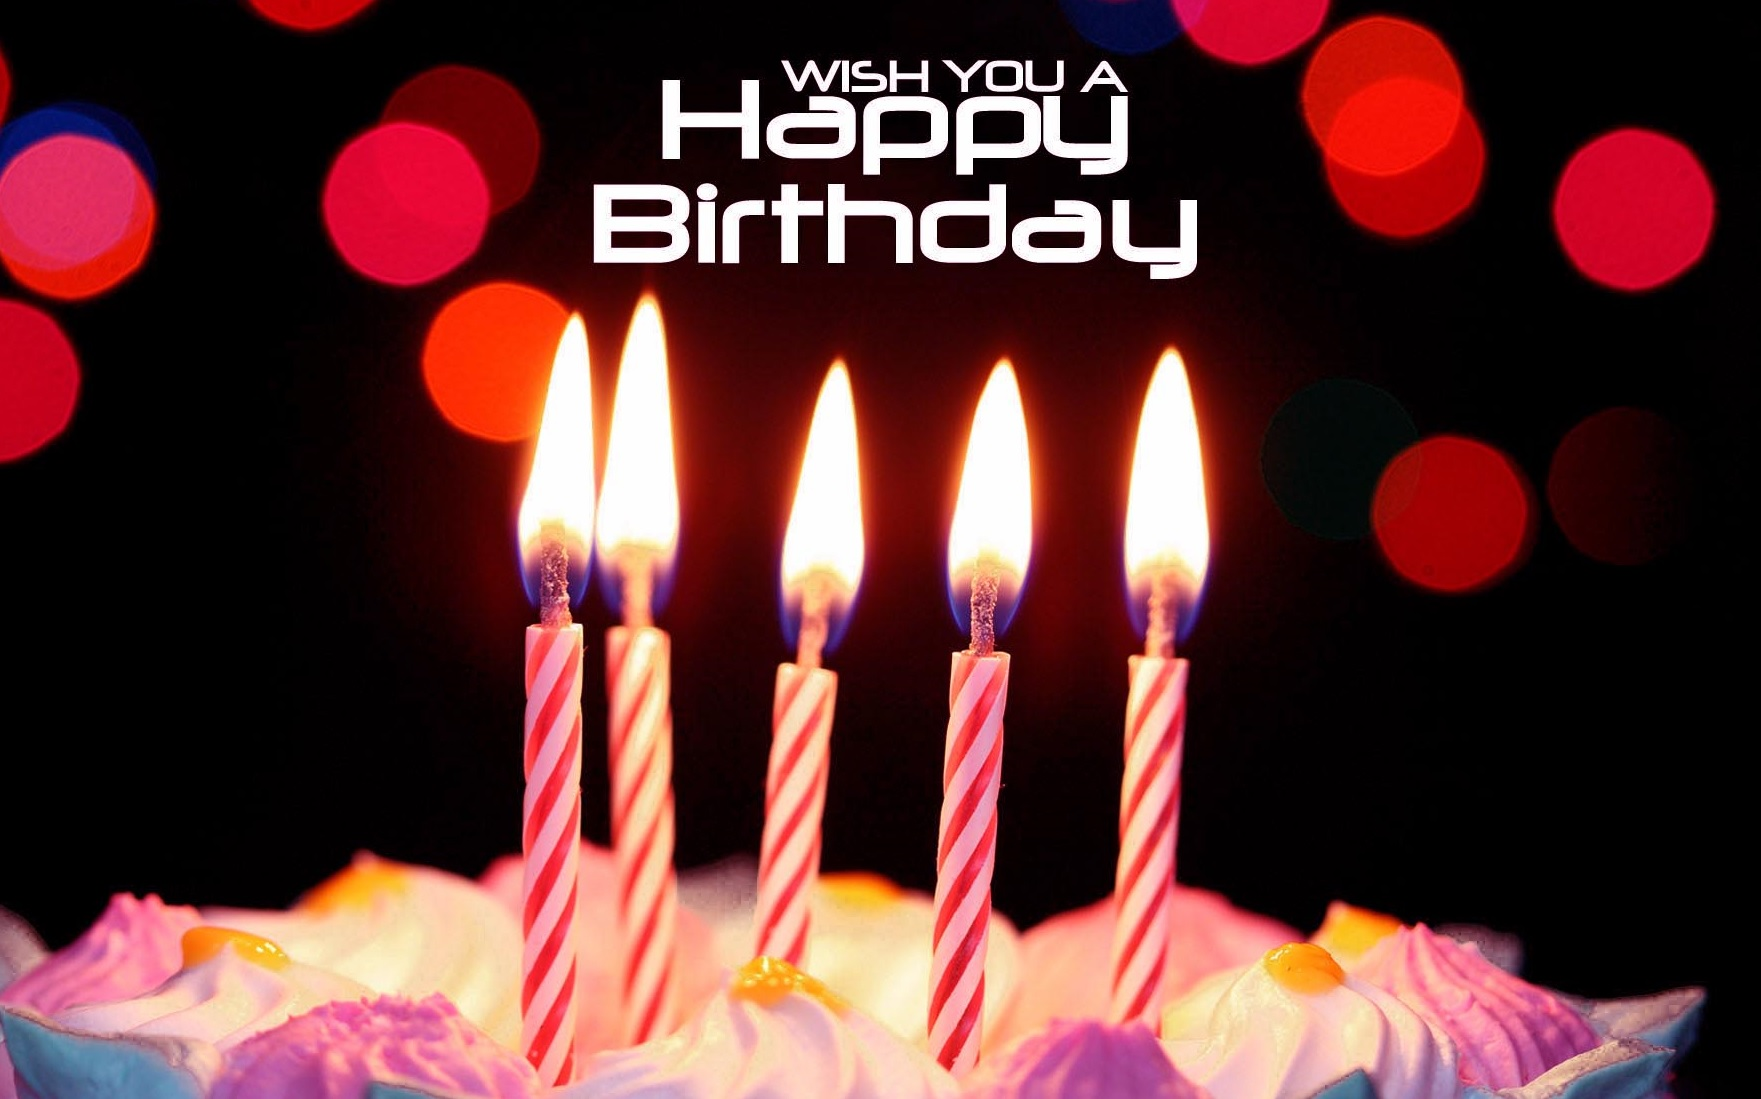 Best Happy Birthday Message, Wishes, Images And Wallpapers